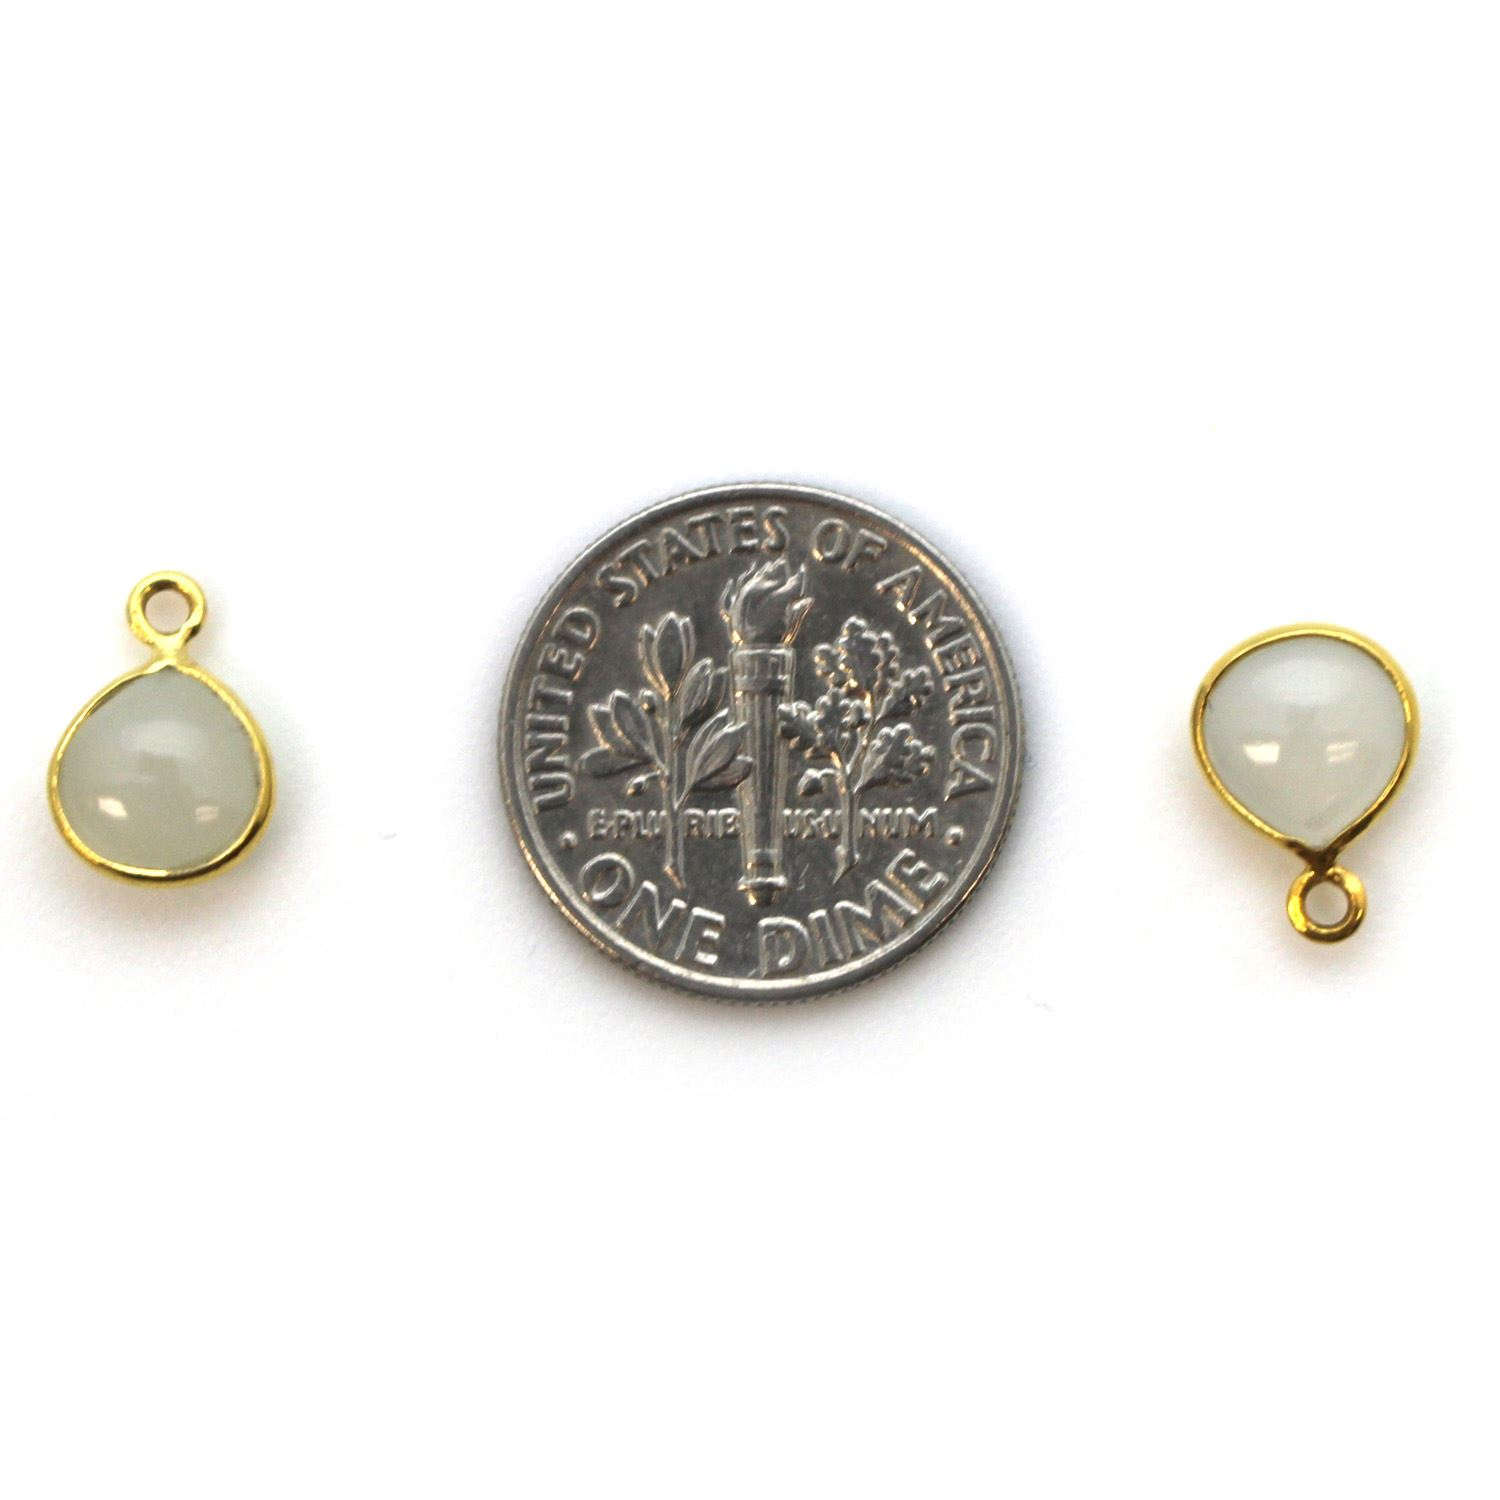 Bezel Charm Pendant - Gold Plated Sterling Silver Charm - Natural Moonstone - Tiny Heart Shape -7mm